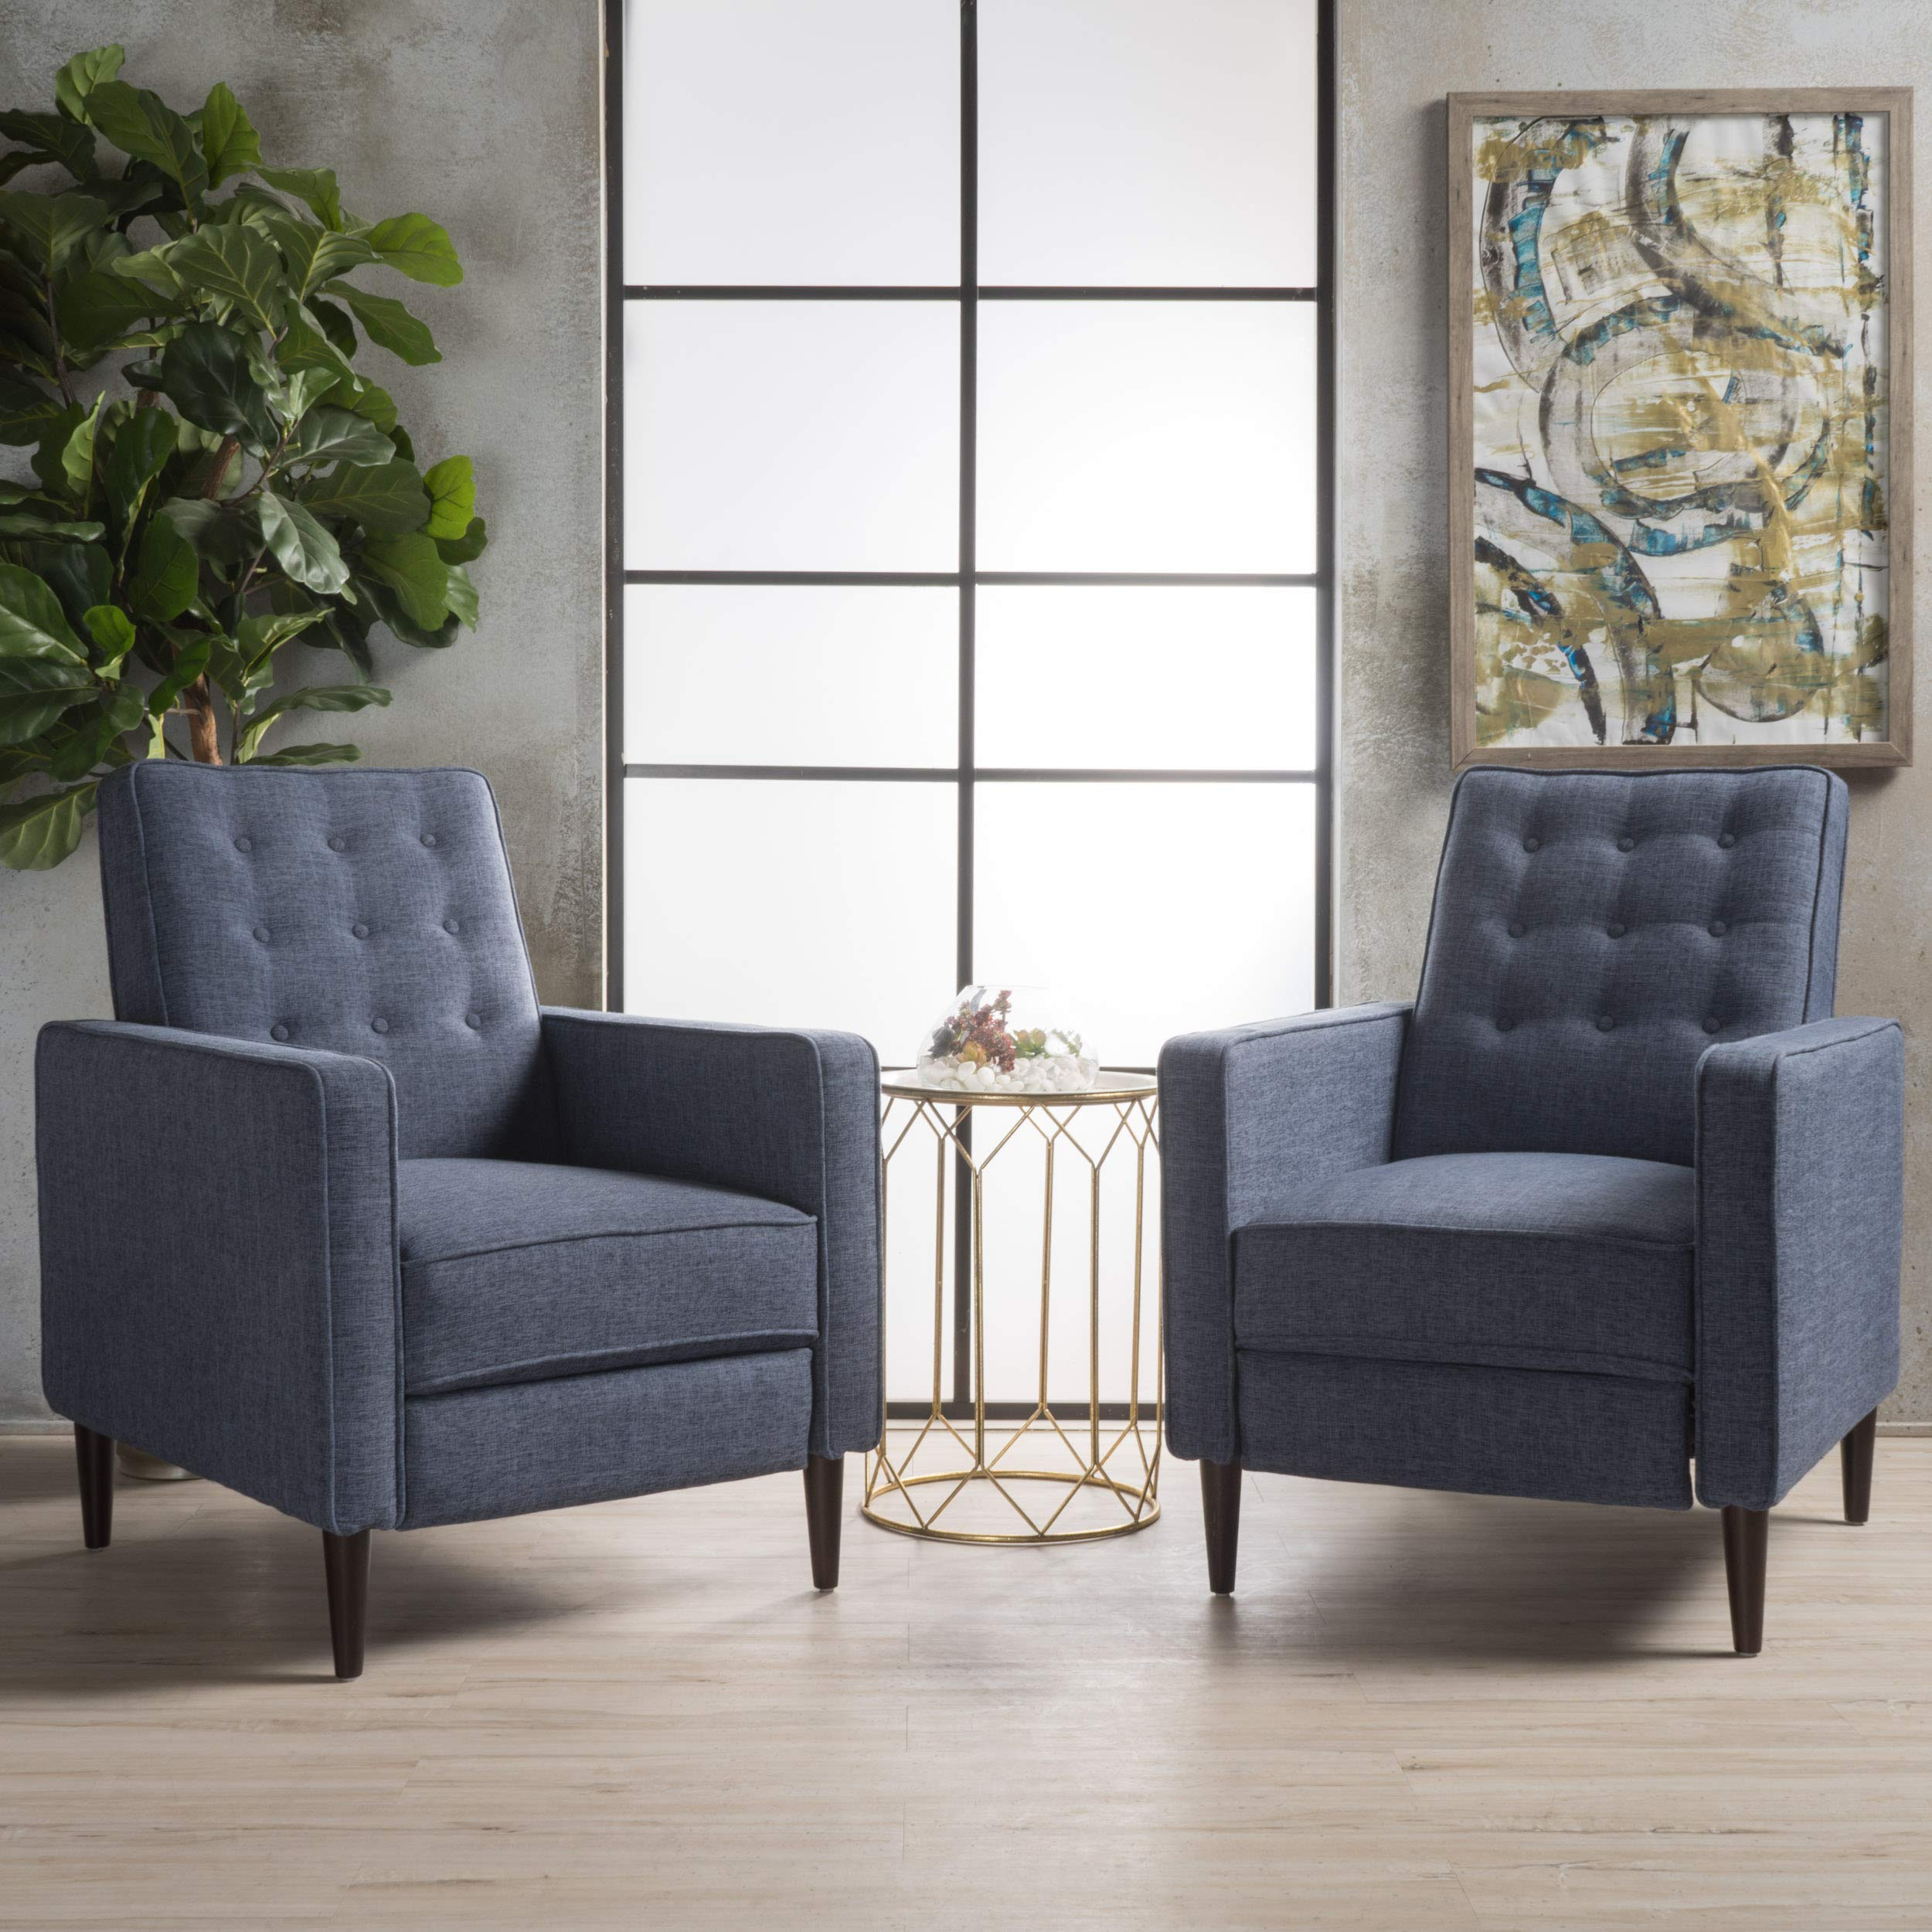 Christopher Knight Home Marston Mid Century Modern Fabric Recliner (Set of 2) (Dark Blue) by Christopher Knight Home